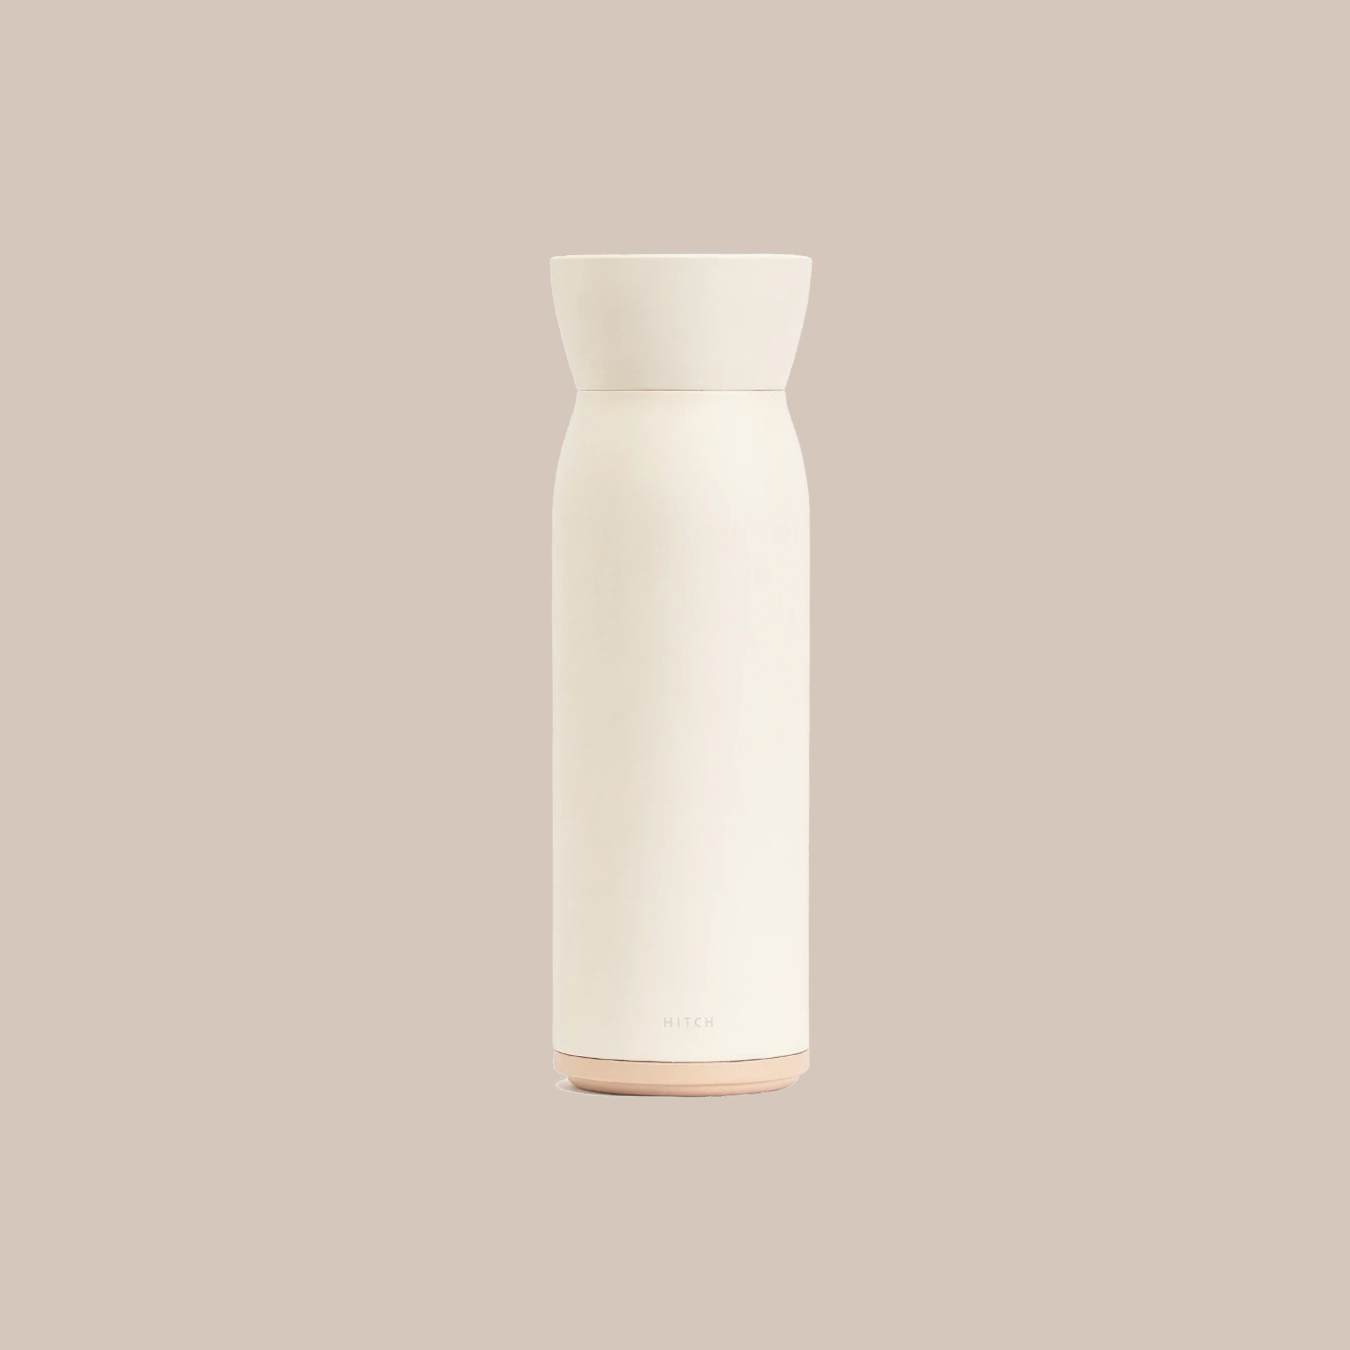 Bottle and Cup in Natural White